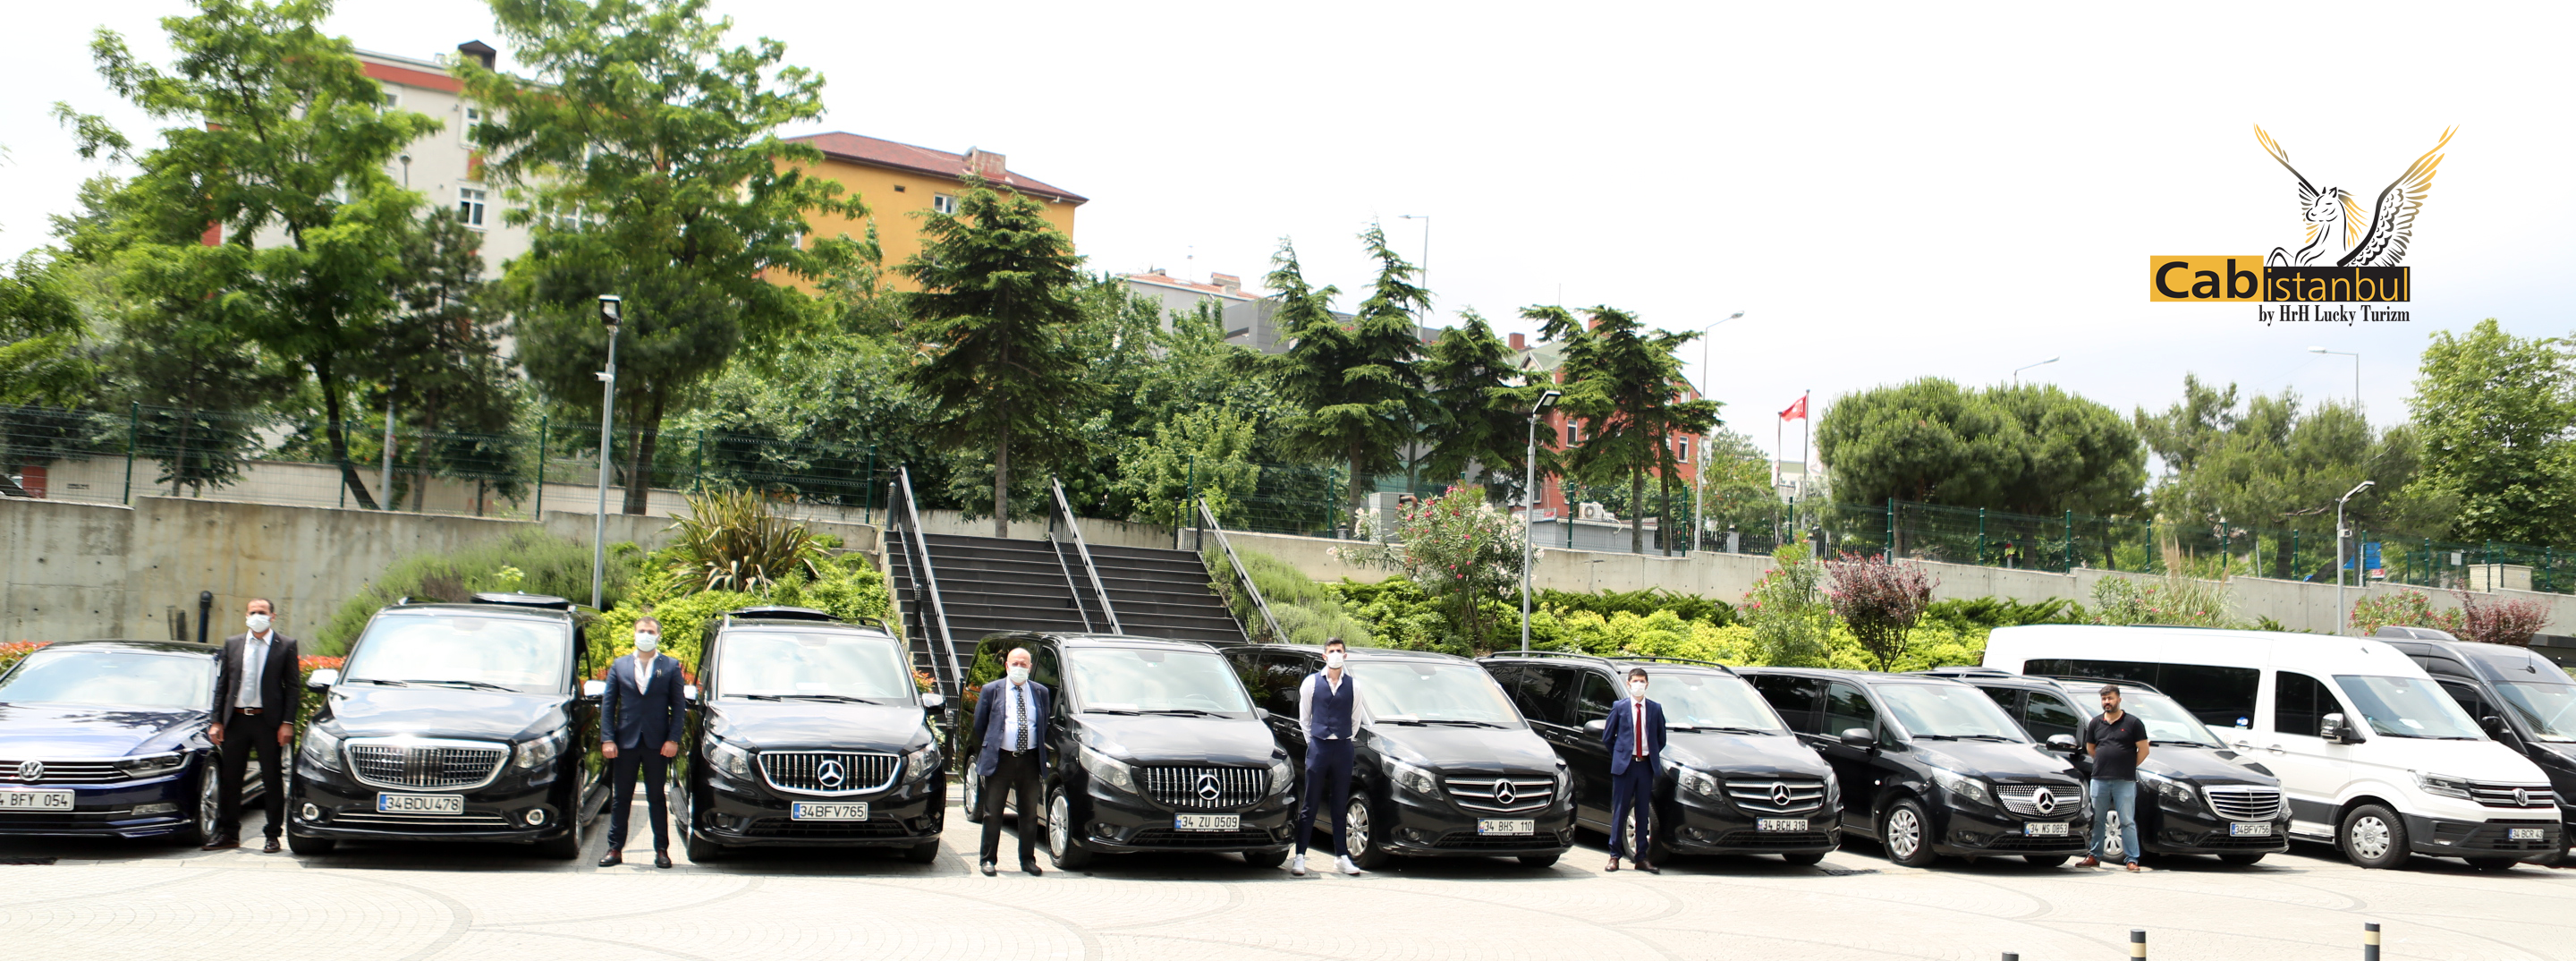 Chauffeur Service İn İstanbul-Proffesional Drivers